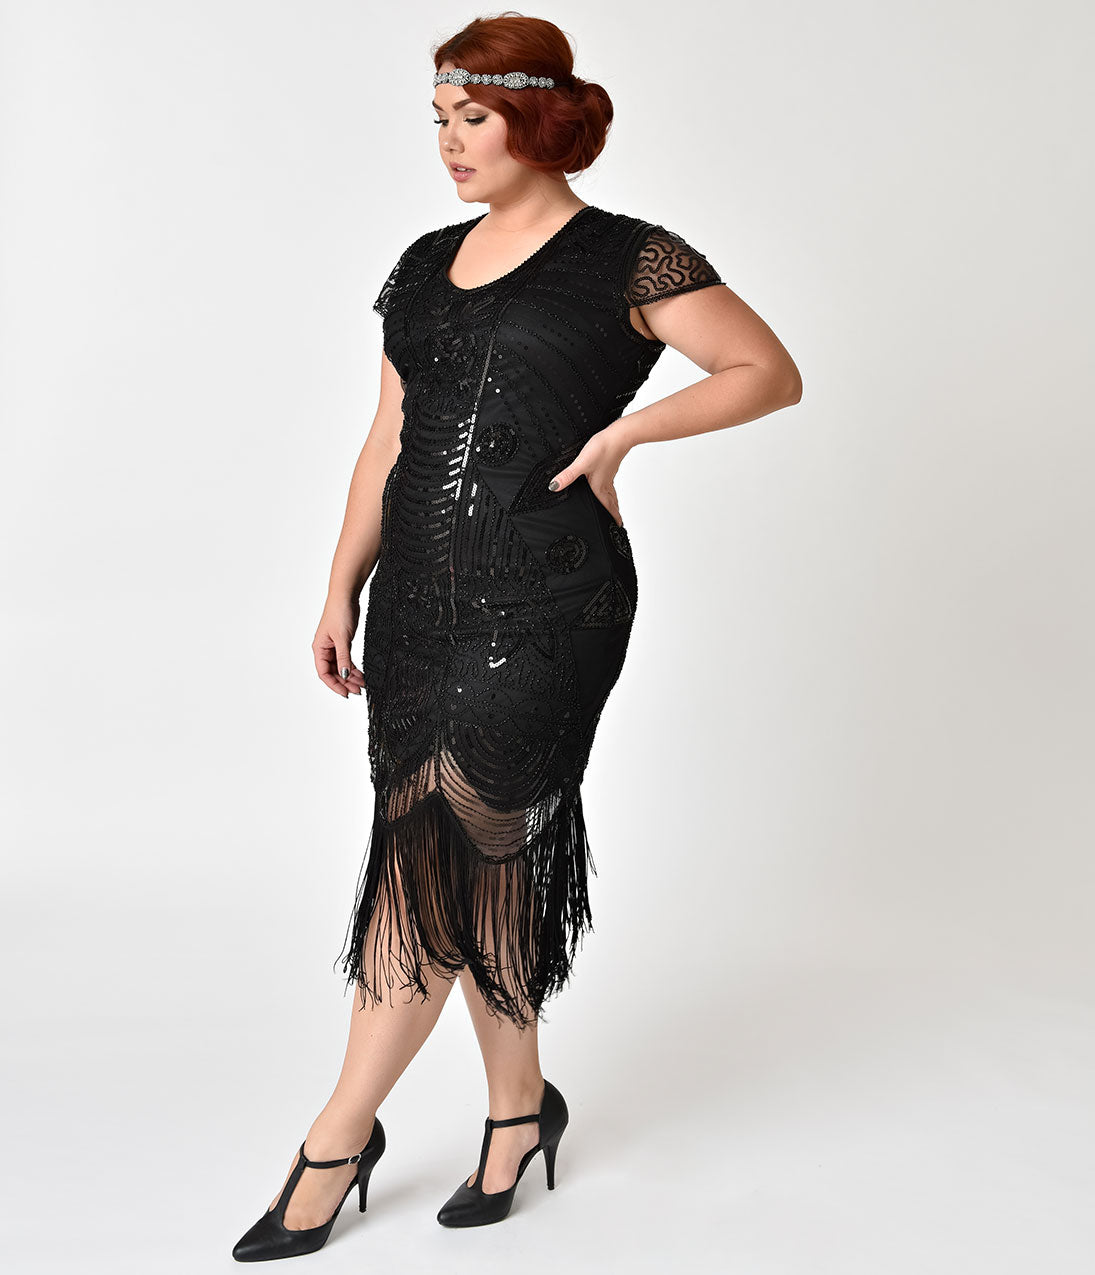 Roaring 20s Costumes- Flapper Costumes, Gangster Costumes Black Beaded Cap Sleeve Chantal Fringe Flapper Dress $74.00 AT vintagedancer.com